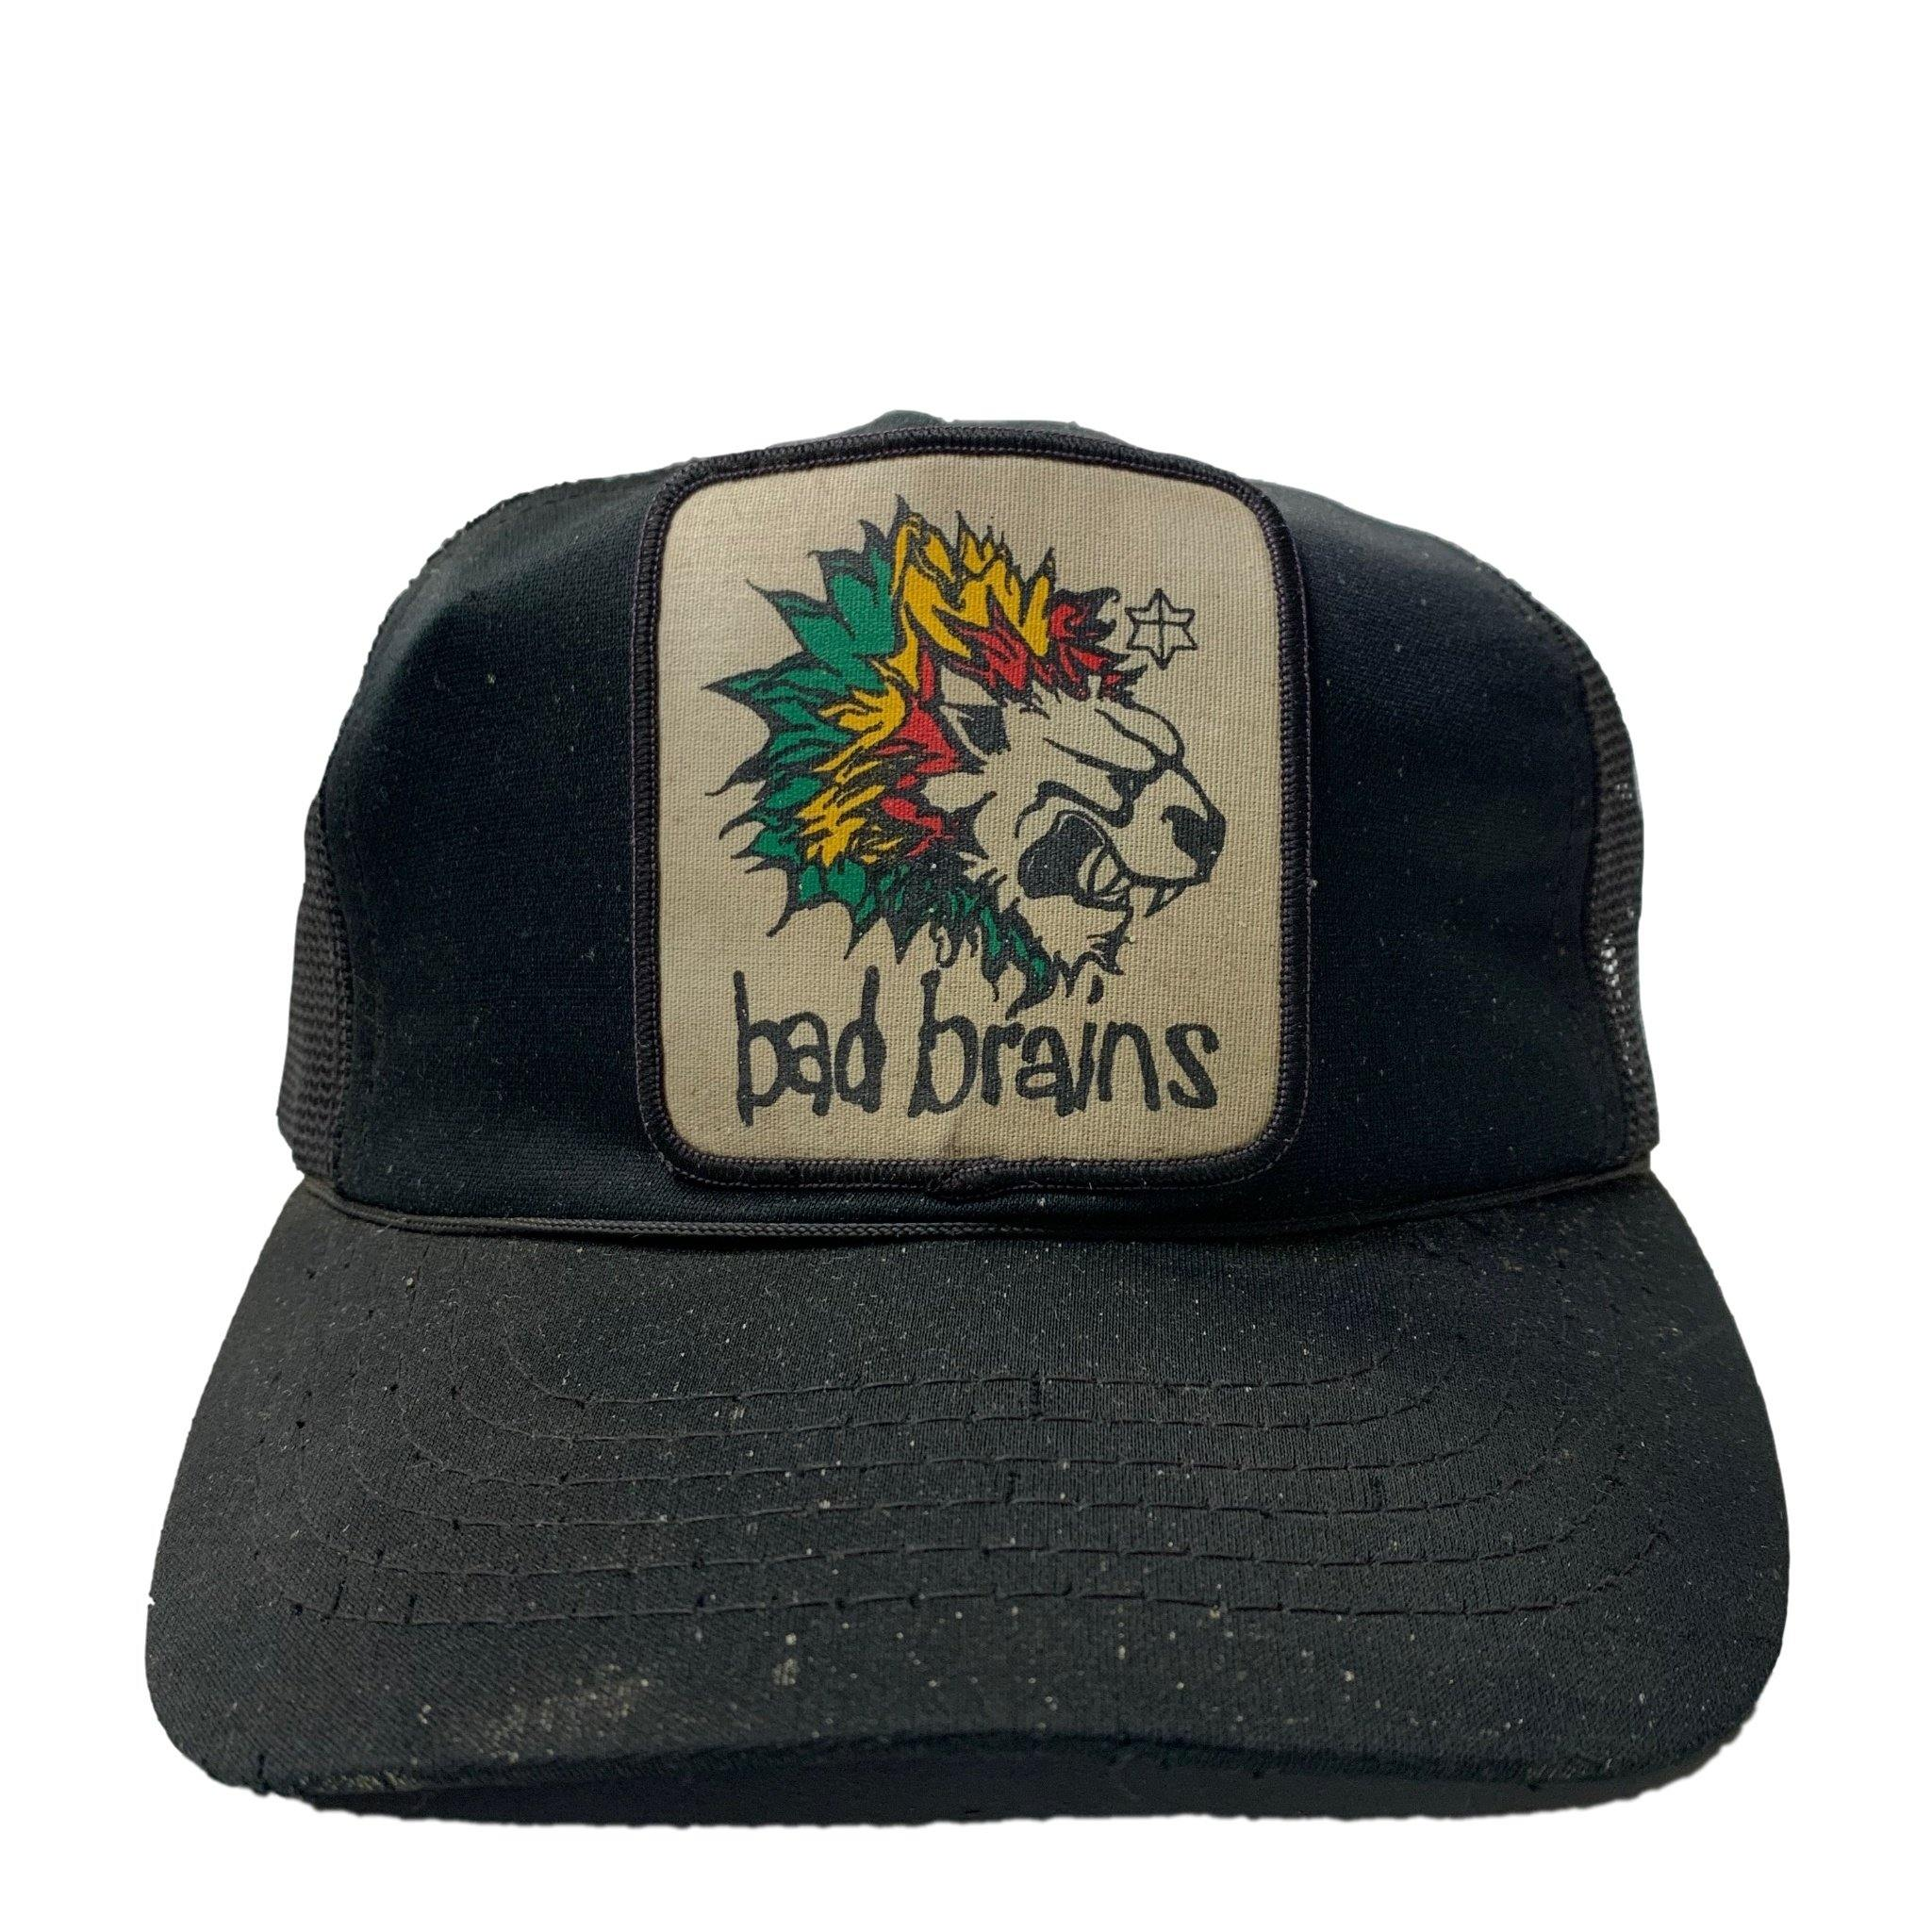 Vintage 80's Bad Brains Trucker Hat